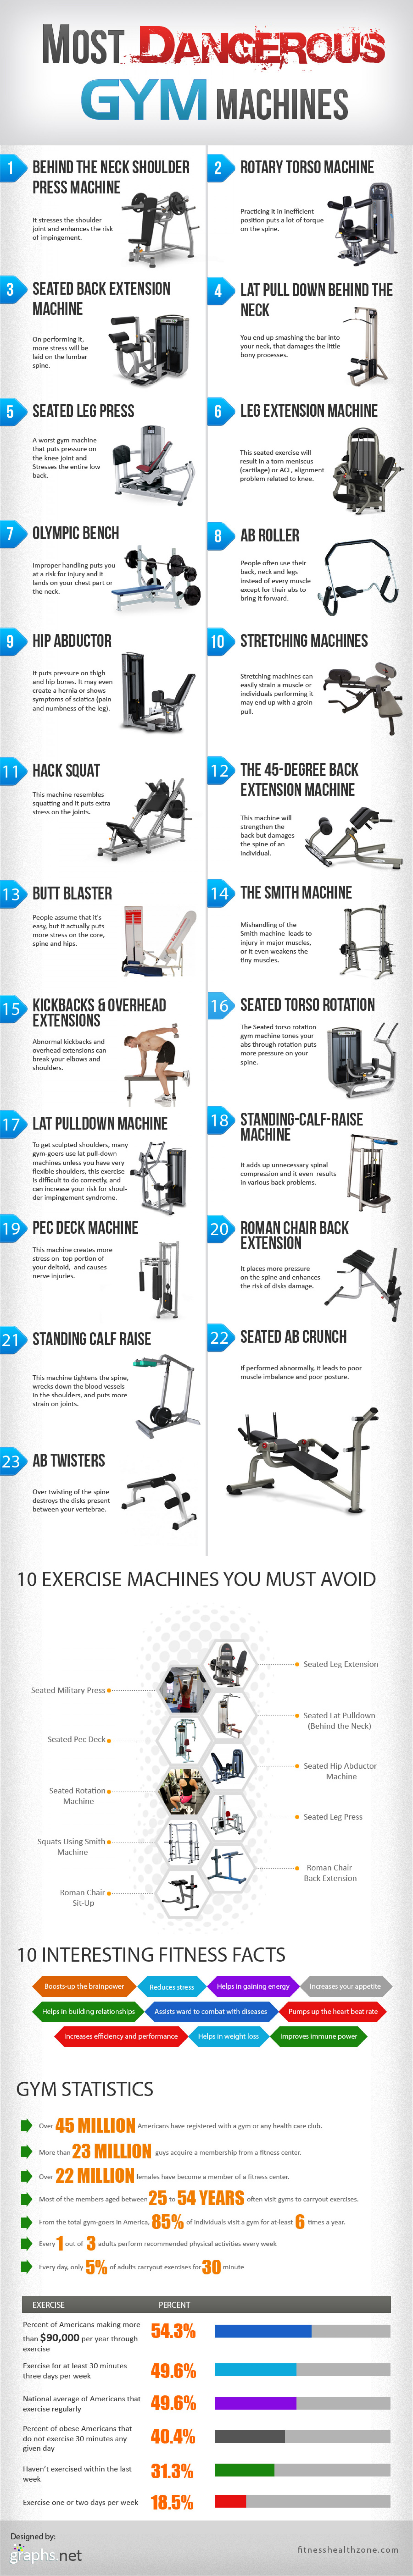 Most dangerous gym machines infographic visual ly